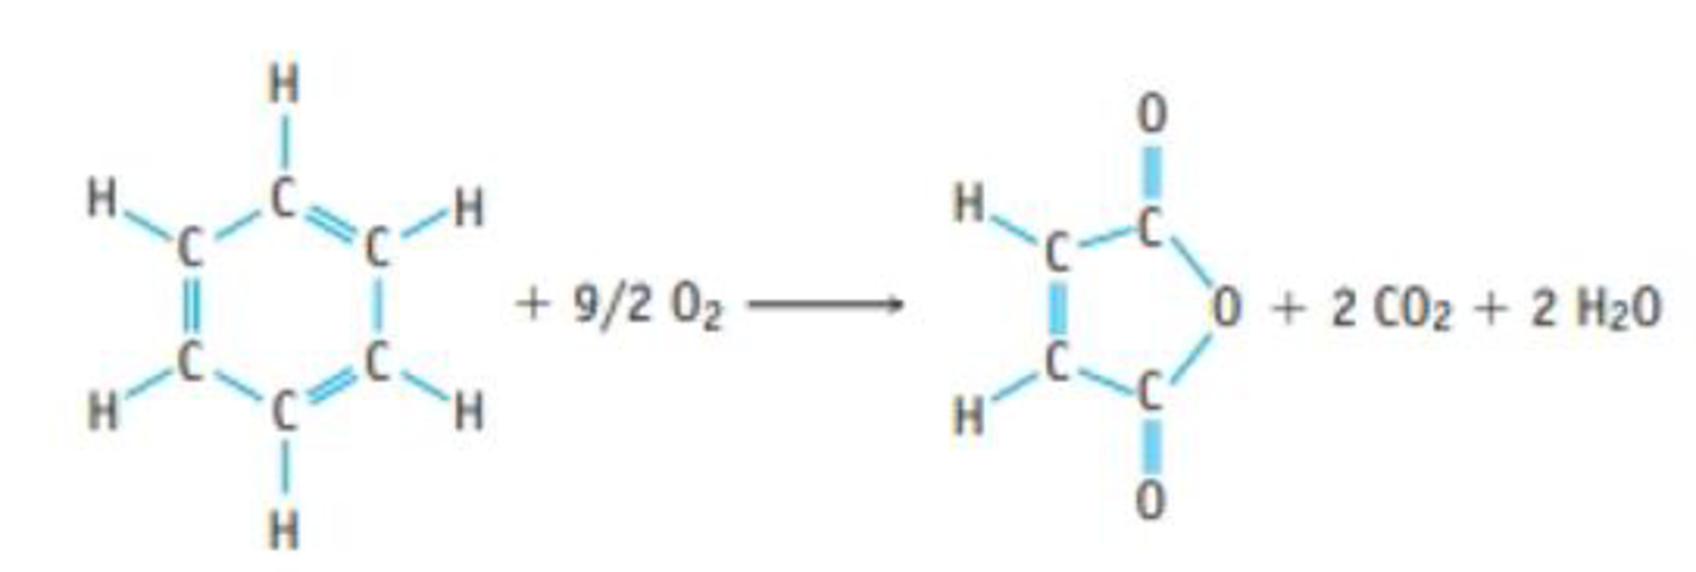 Chapter 4, Problem 141SCQ, ATOM ECONOMY: Benzene, C6H6, is a common compound, and it can be oxidized to give maleic anhydride,